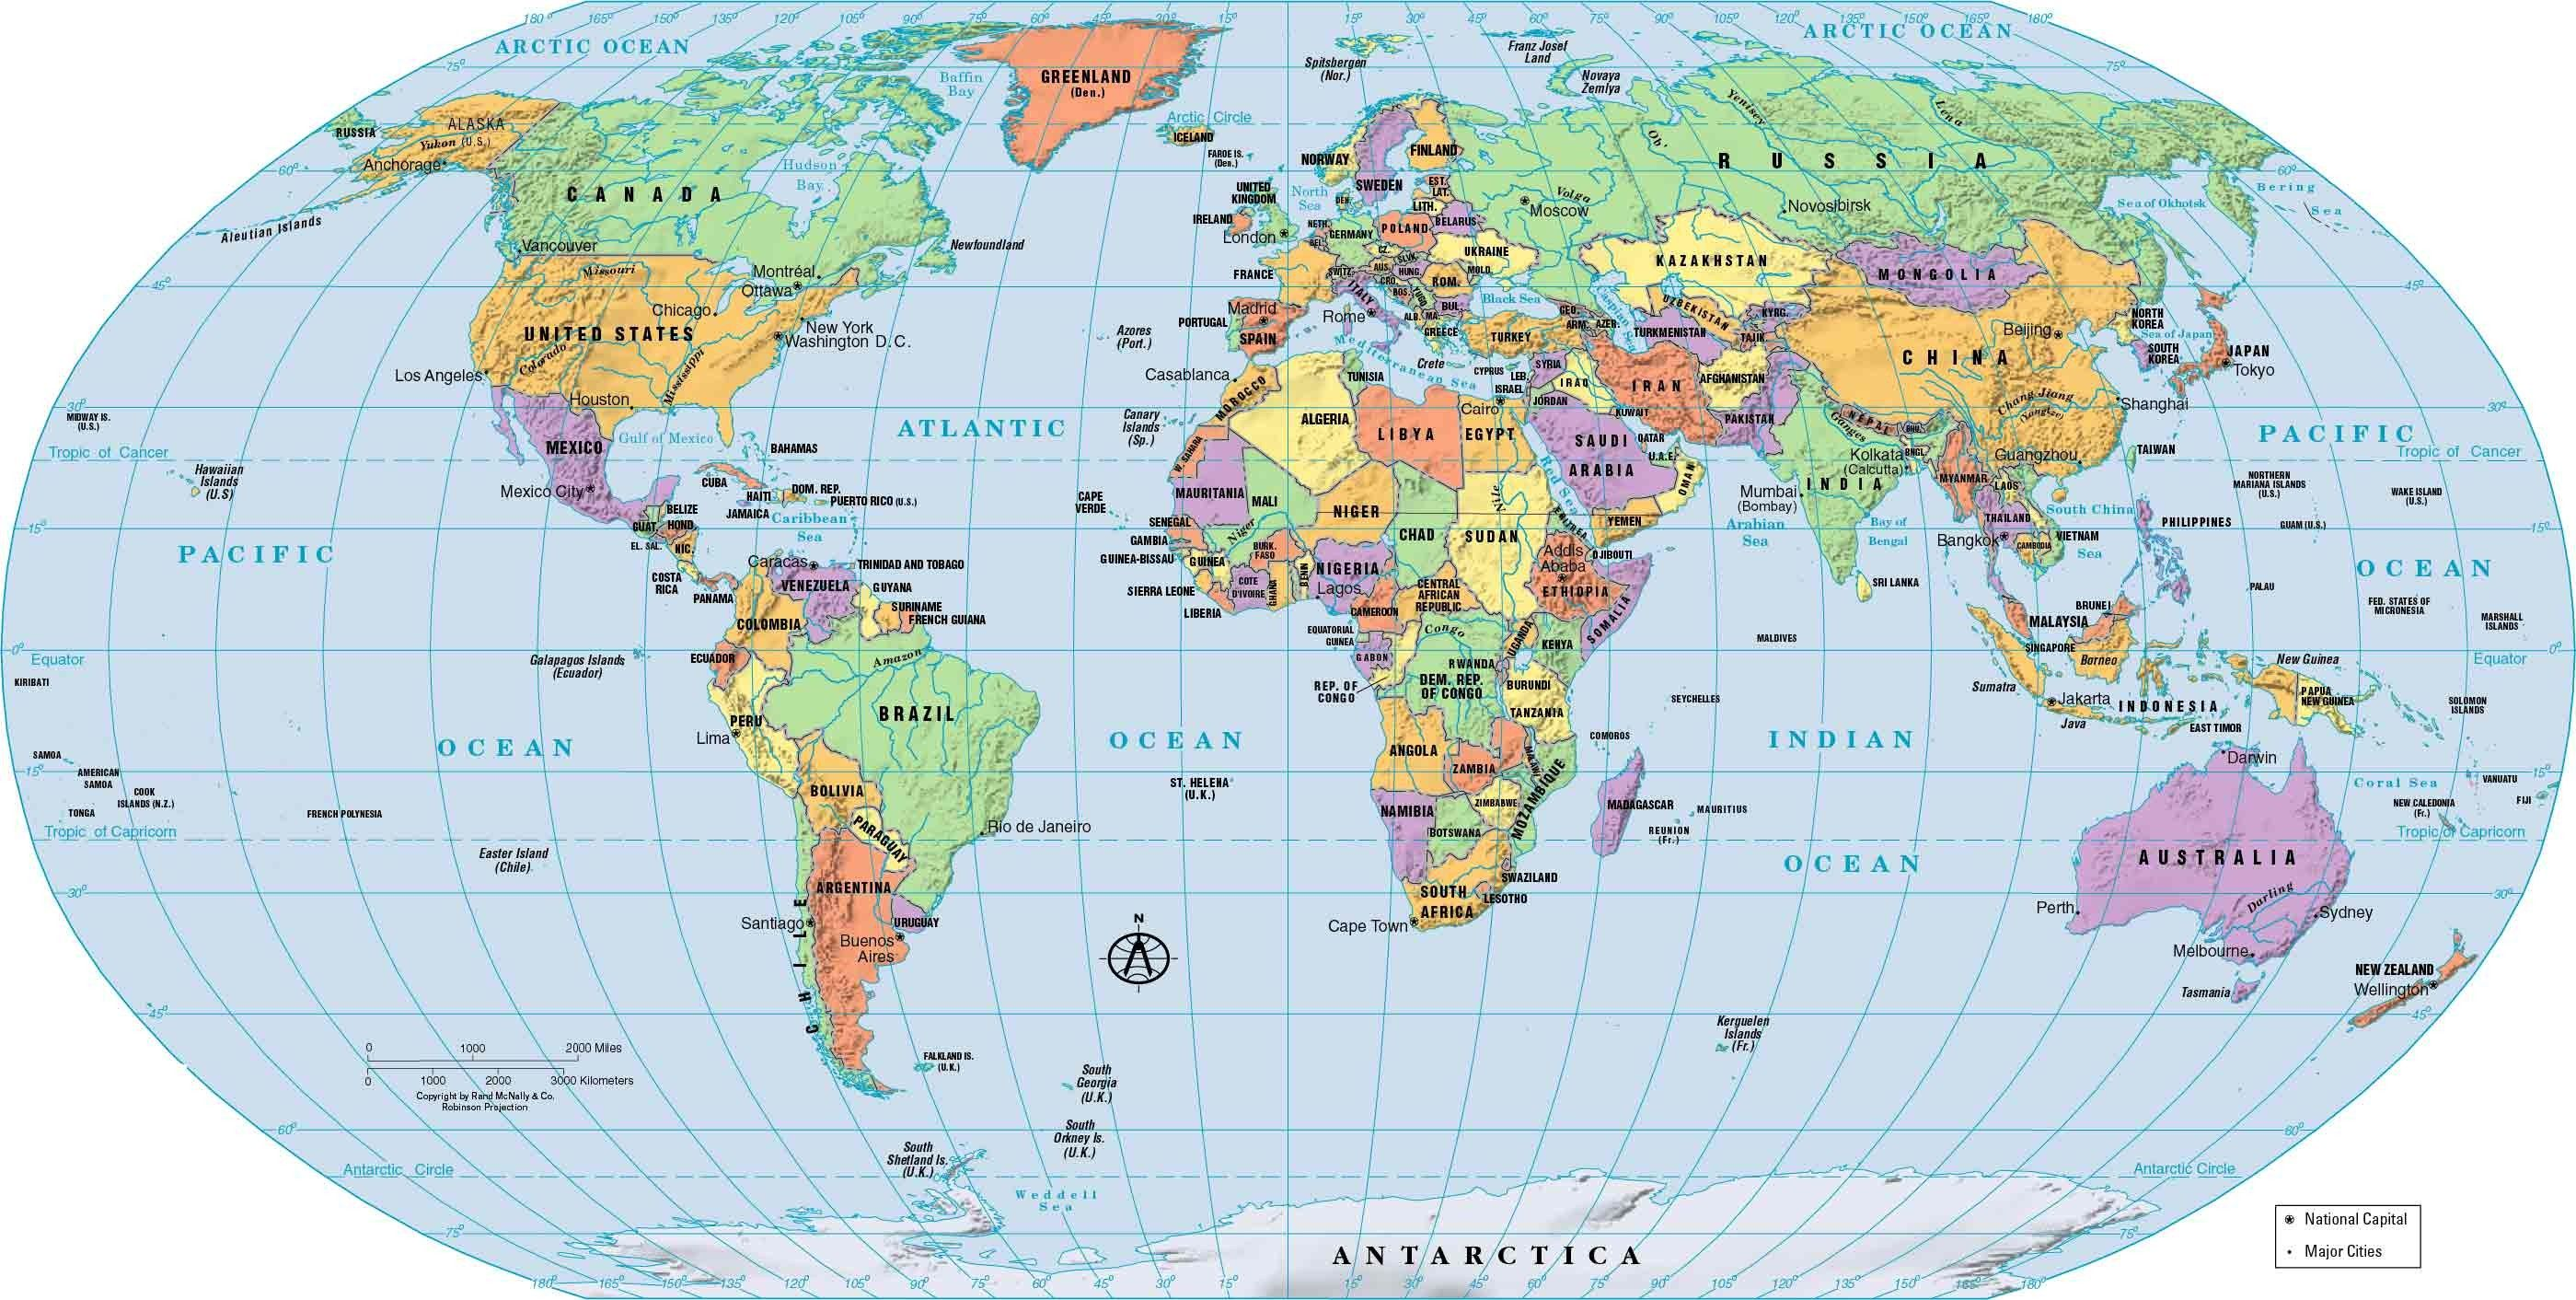 Pin by Lihm Wgl on Flat world map in 2019 | World map wallpaper ...